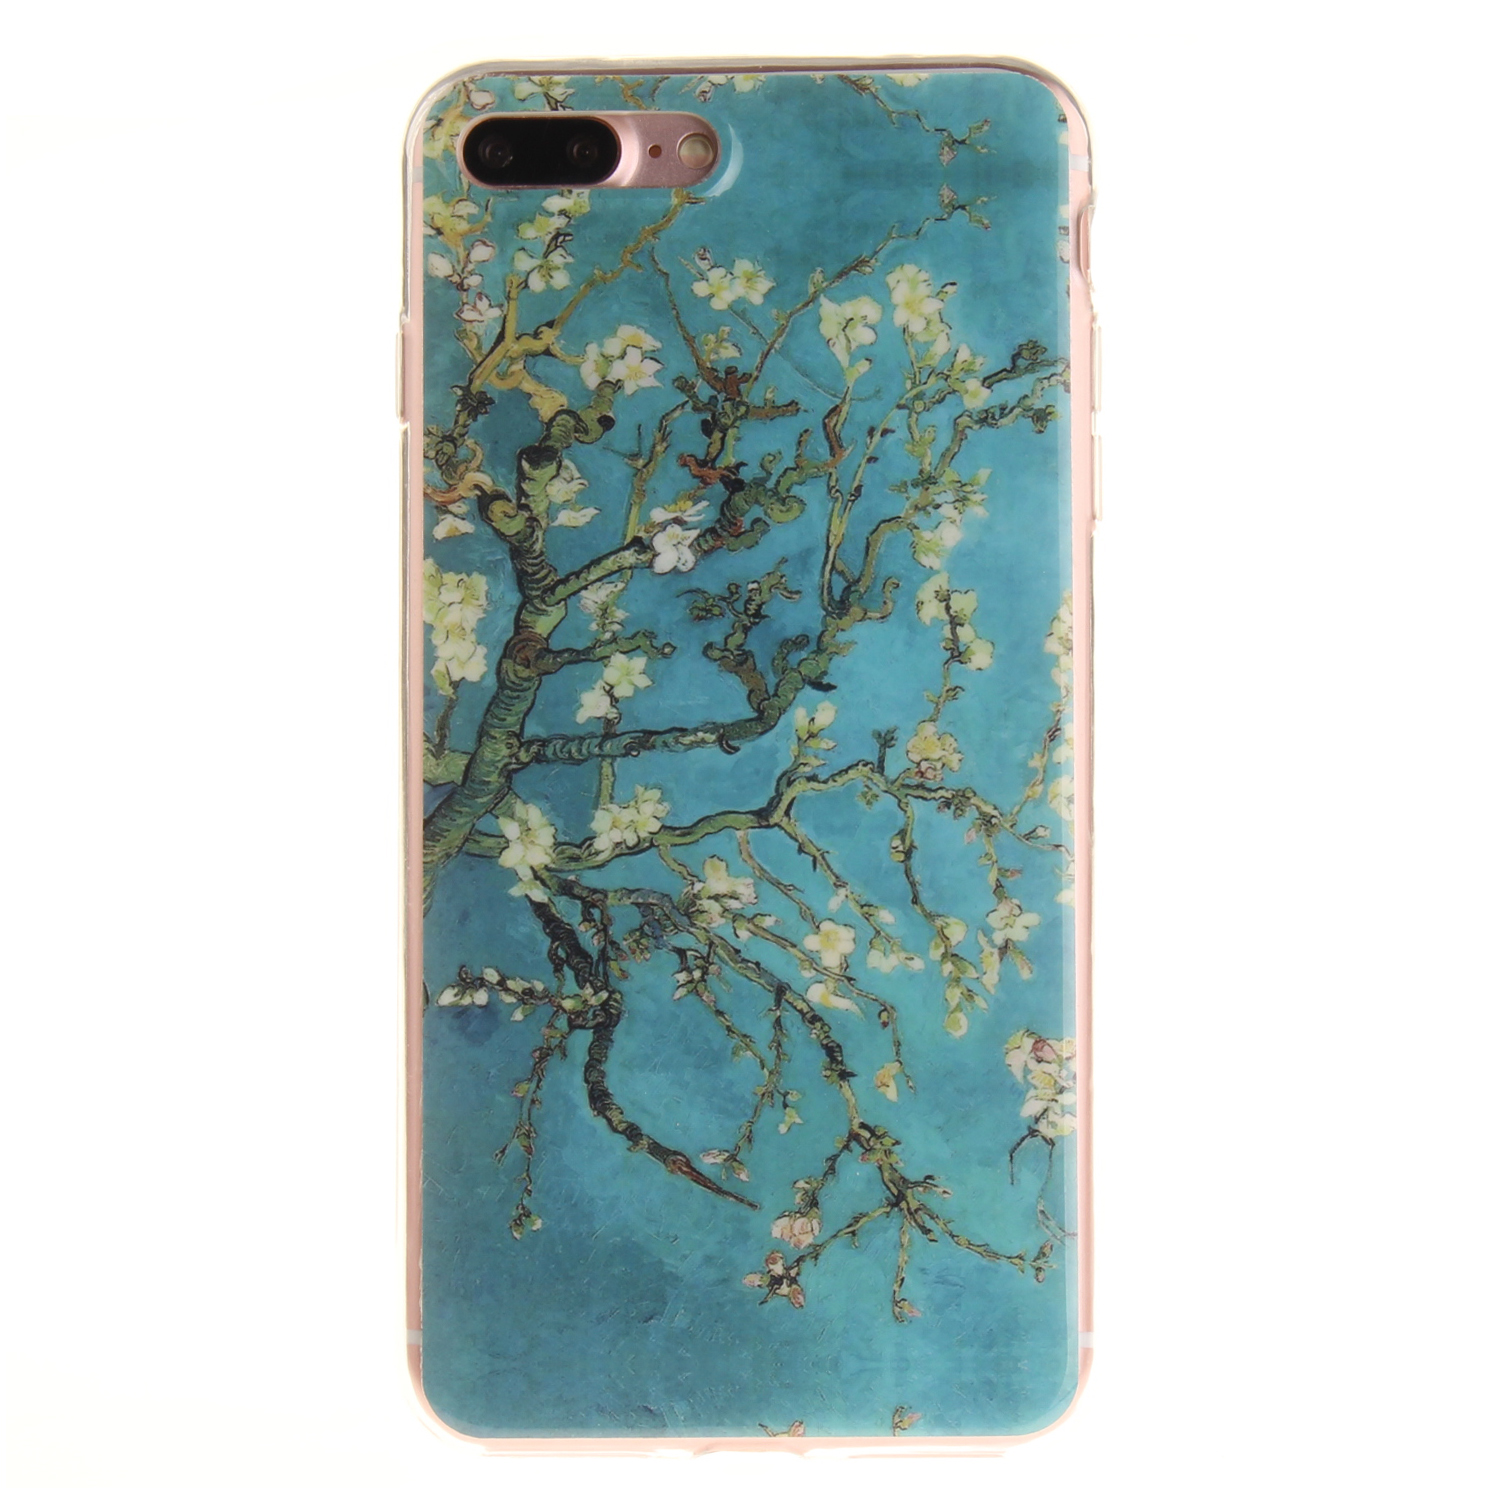 iPhone 8 Plus Case Pattern Printed Soft Protective Cover for iPhone 8 Plus